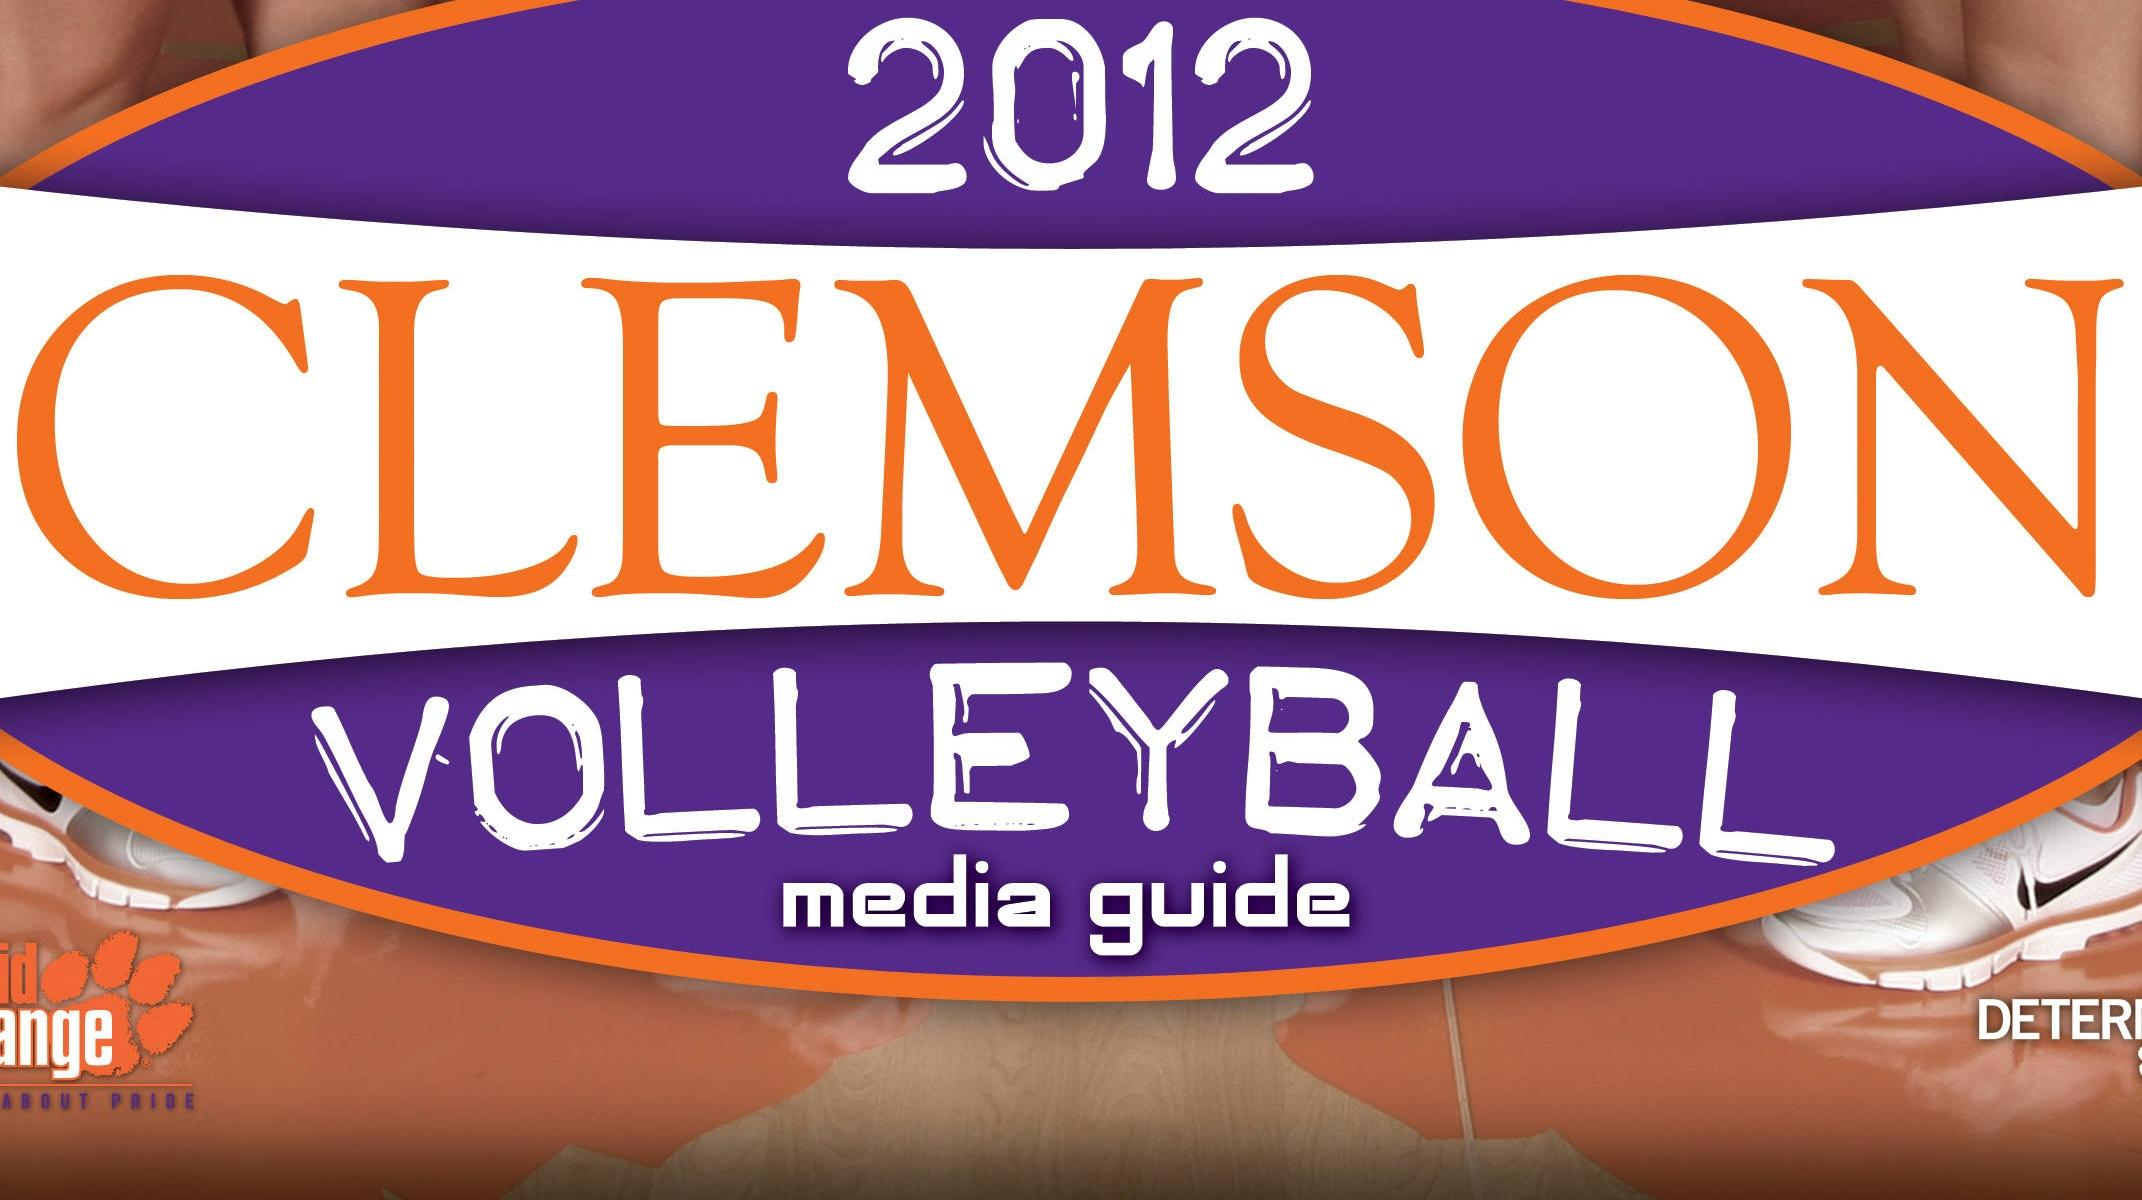 2012 Clemson Volleyball Media Guide